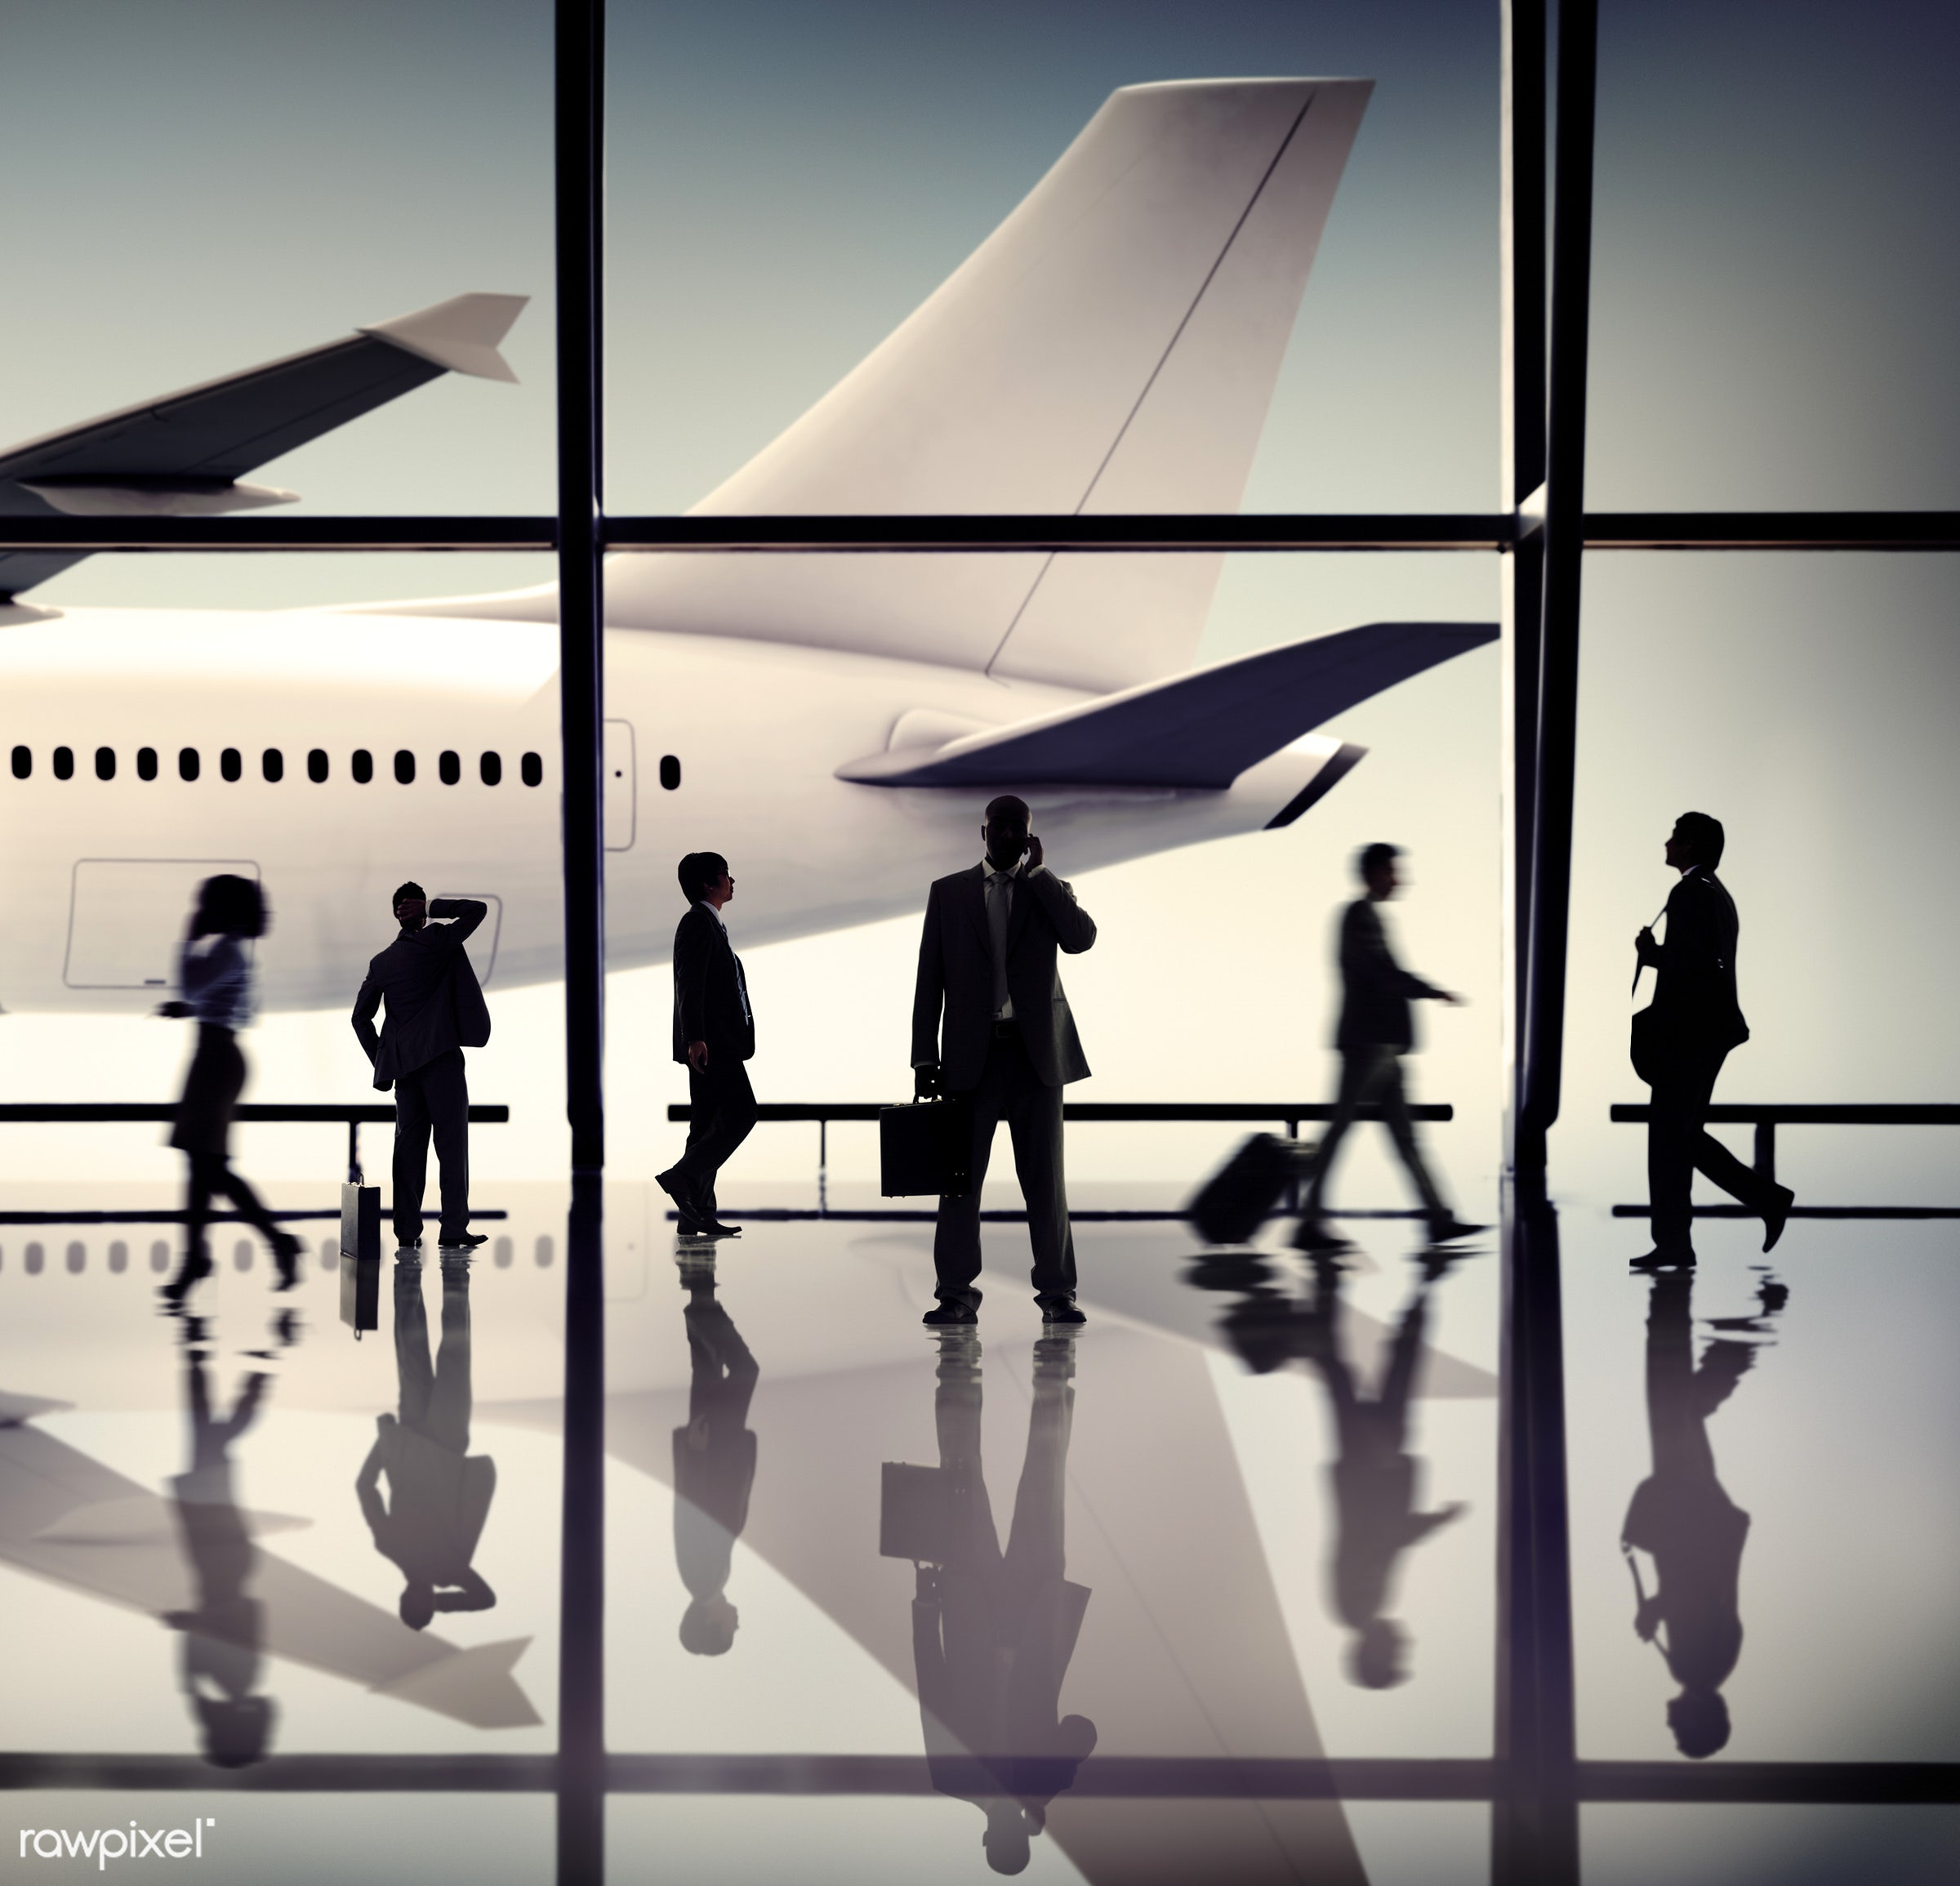 aircraft, airplane, airport, business people, business travel, businessmen, businesswomen, calling, communication, corporate...